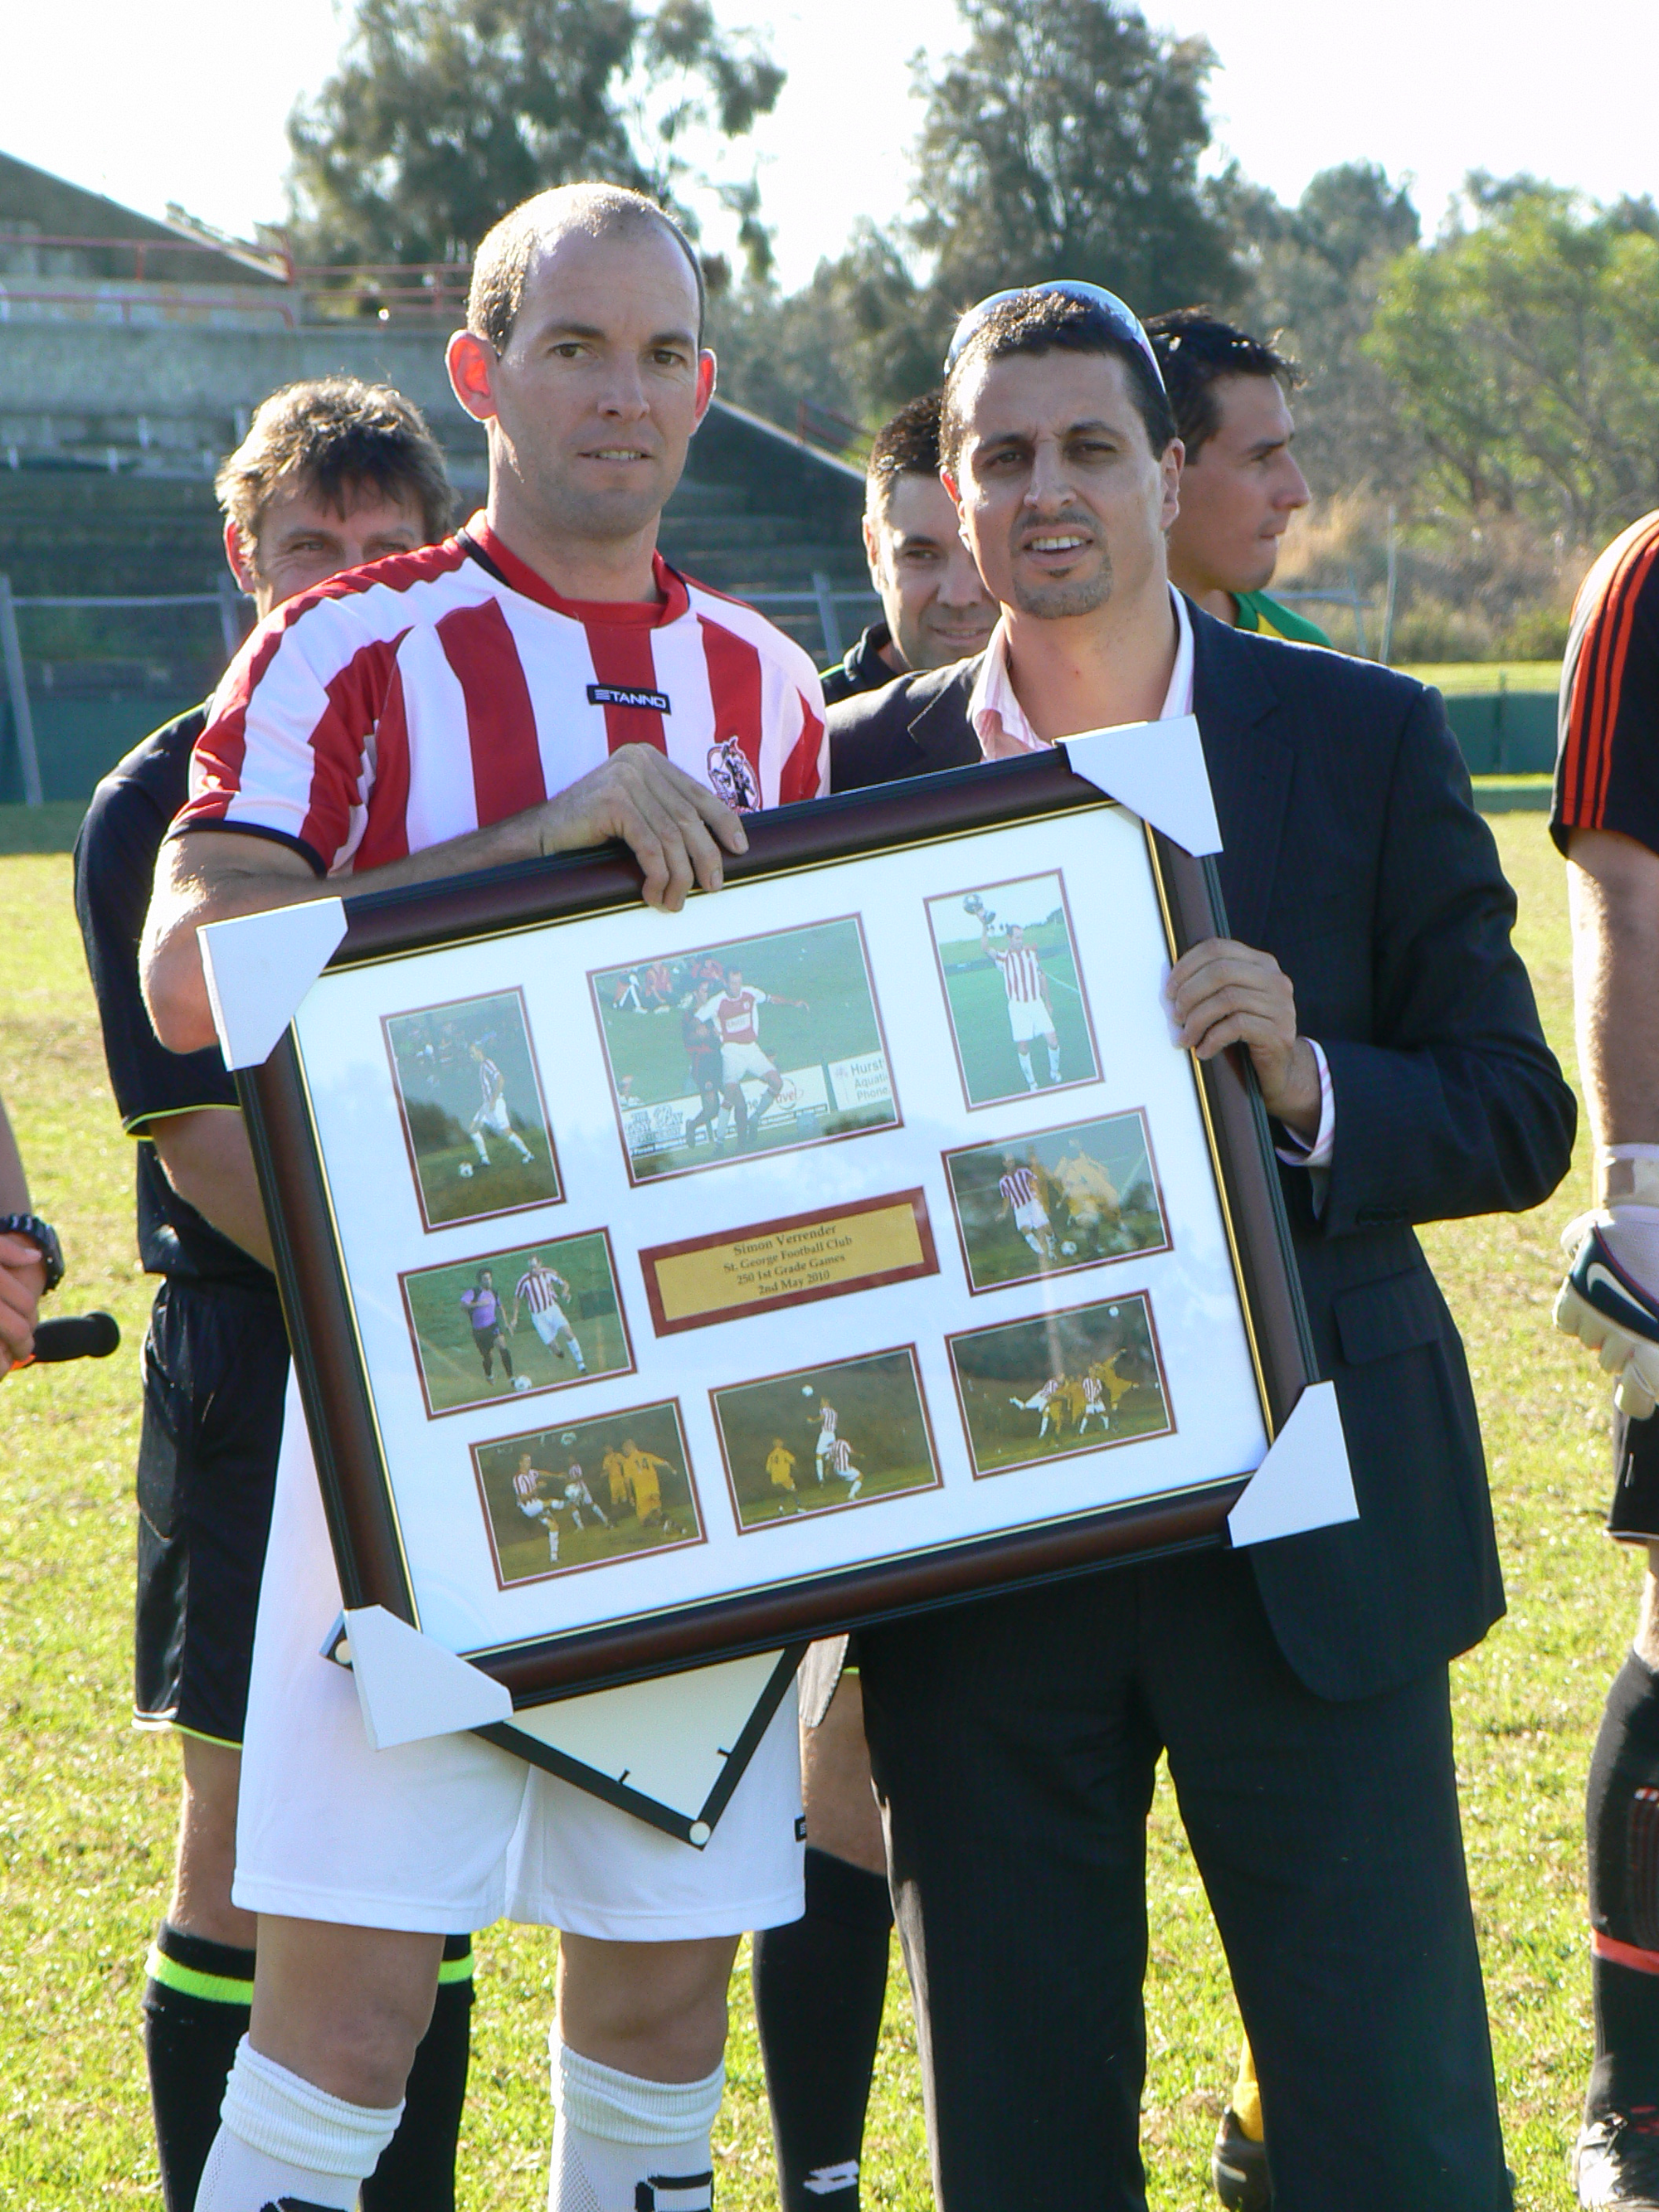 Simon Verrender and Vince Savoca on the occasion of Simon's 250th appearance in 2010